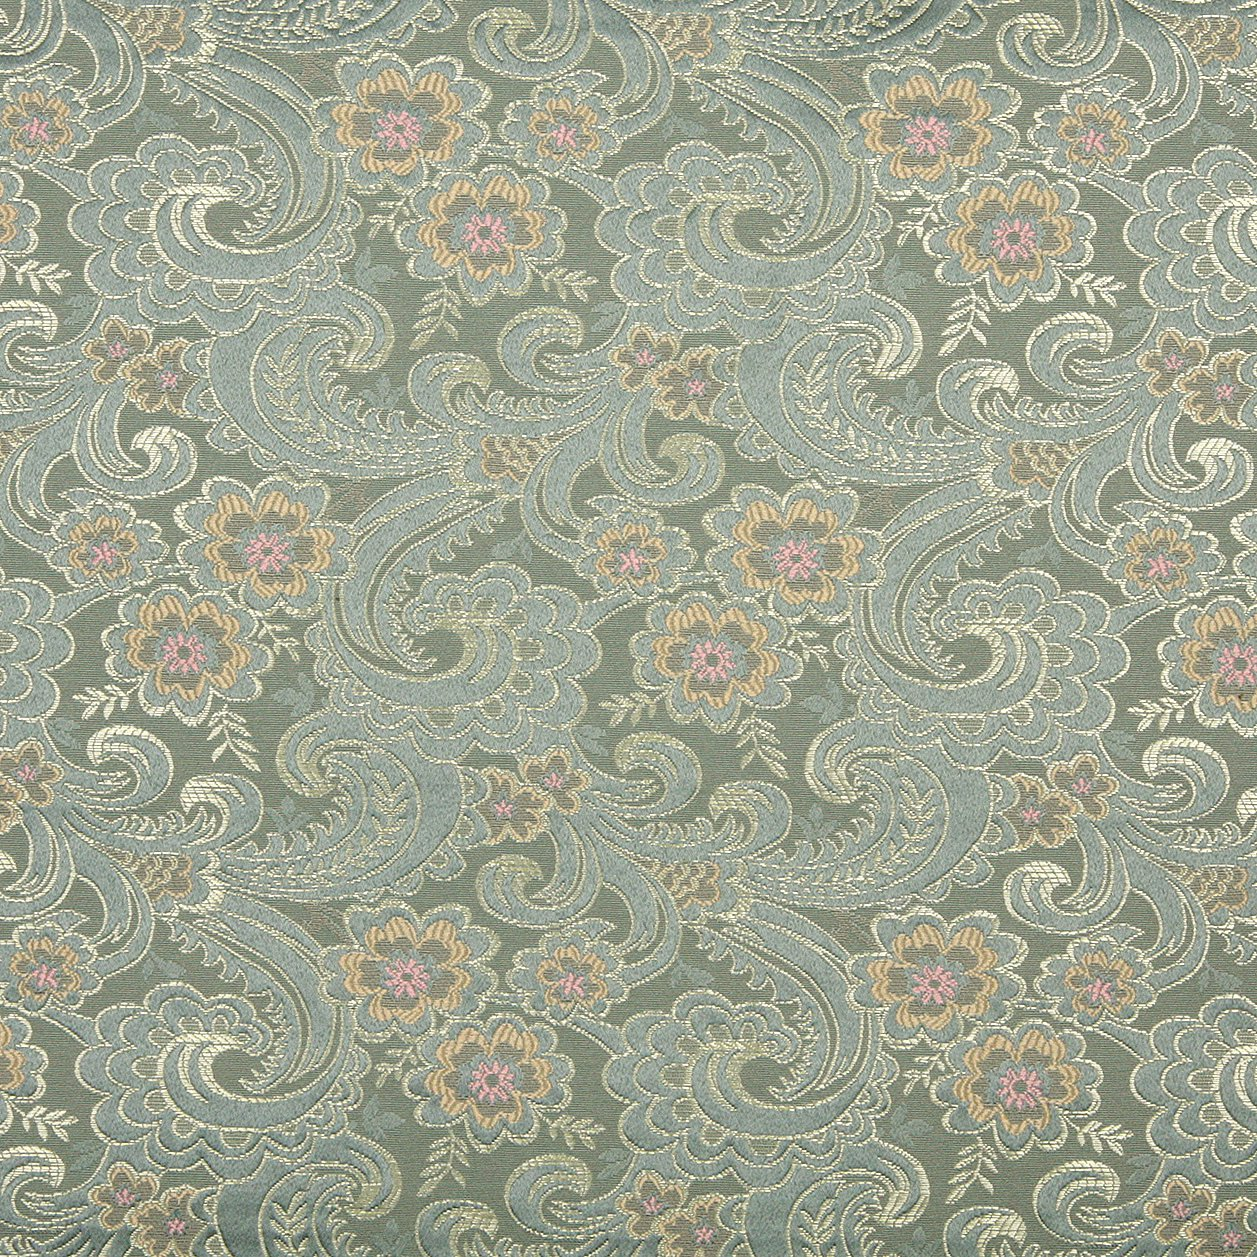 54 wide d122 gold pink and blue paisley floral brocade for Floral upholstery fabric